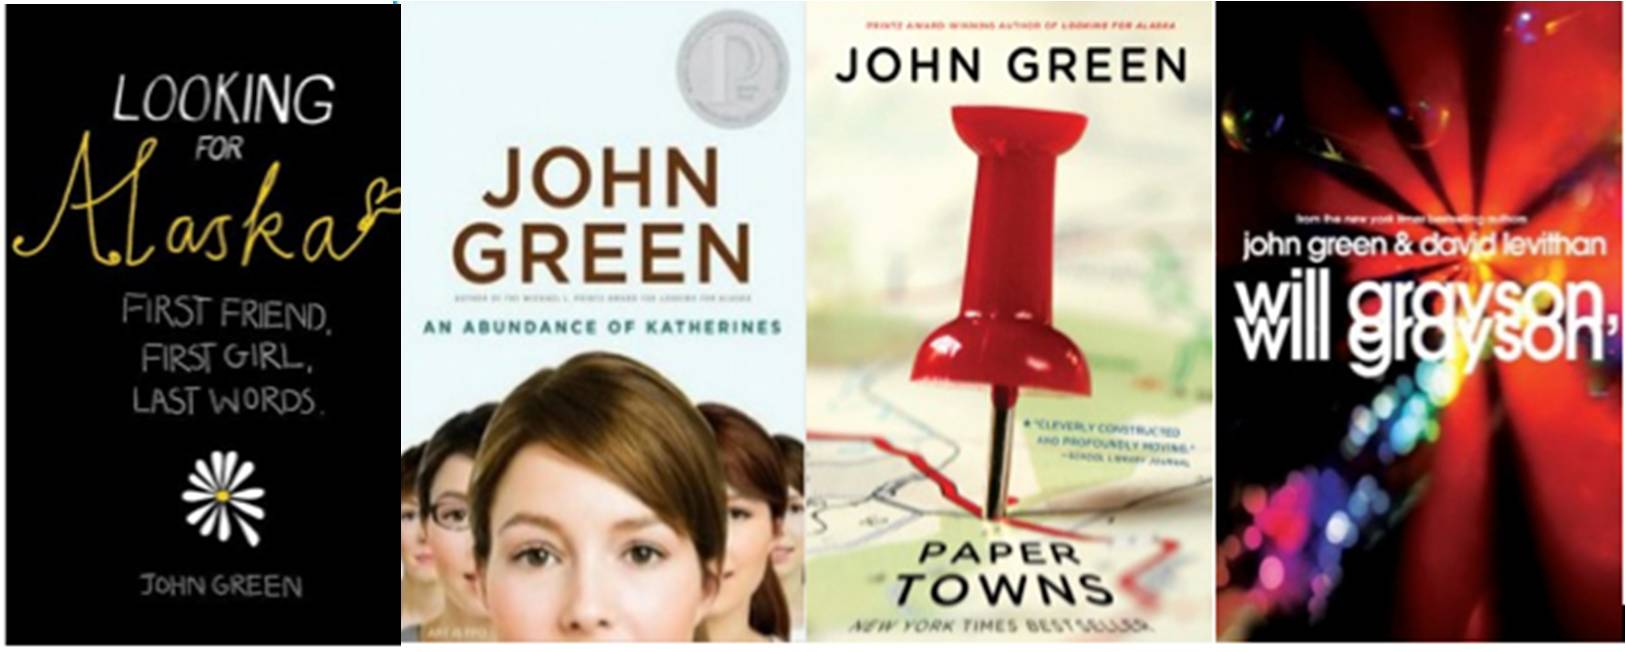 John-Green-Author-Interview-Books.jpg